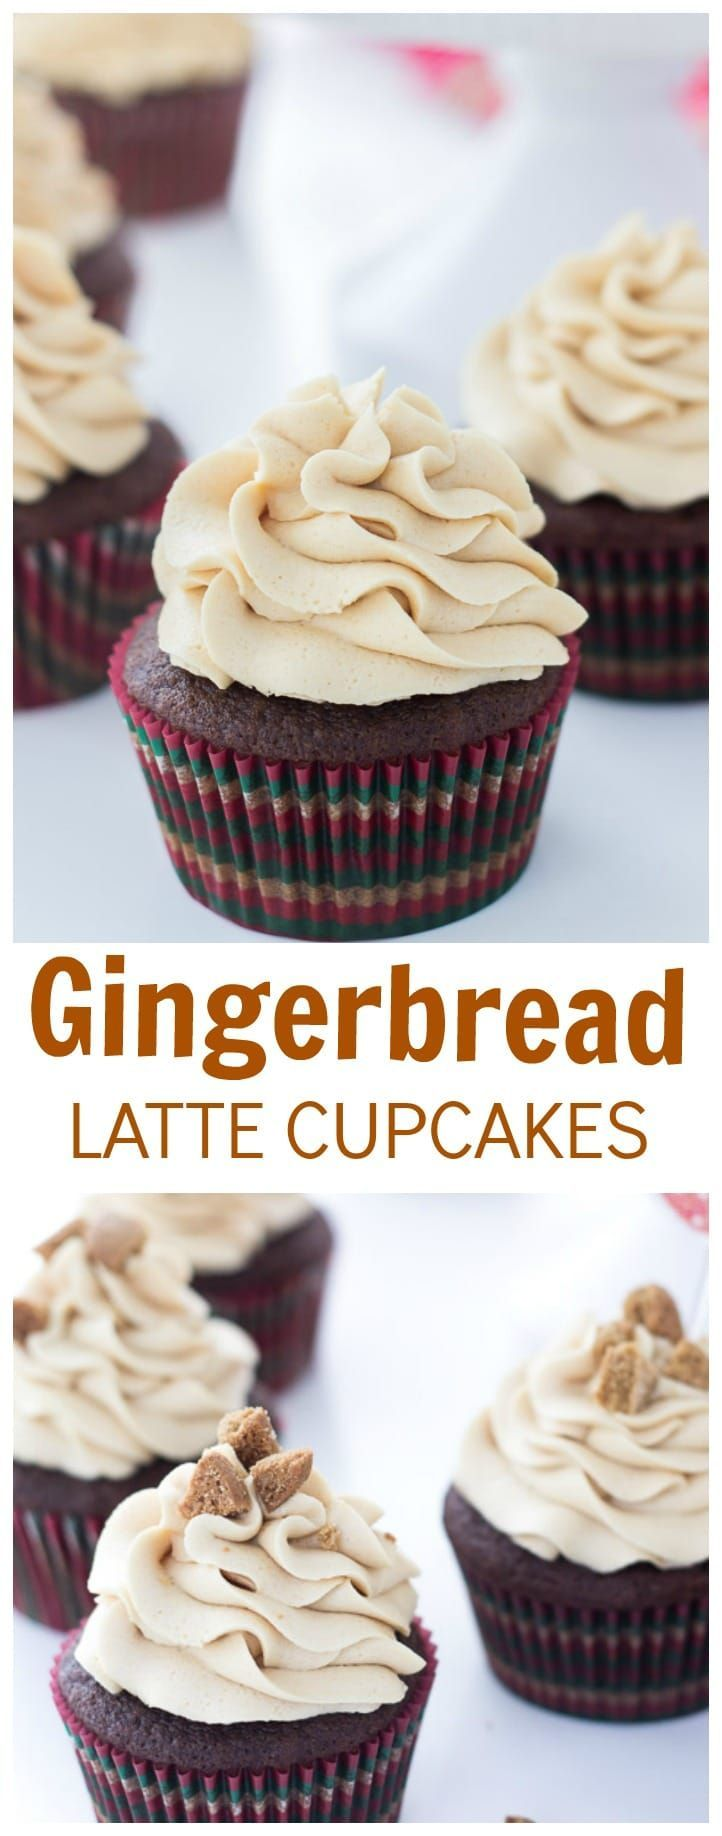 These gingerbread latte cupcakes are a great holiday treat; sweet, spiced and moist.#cupcakes #gingerbread